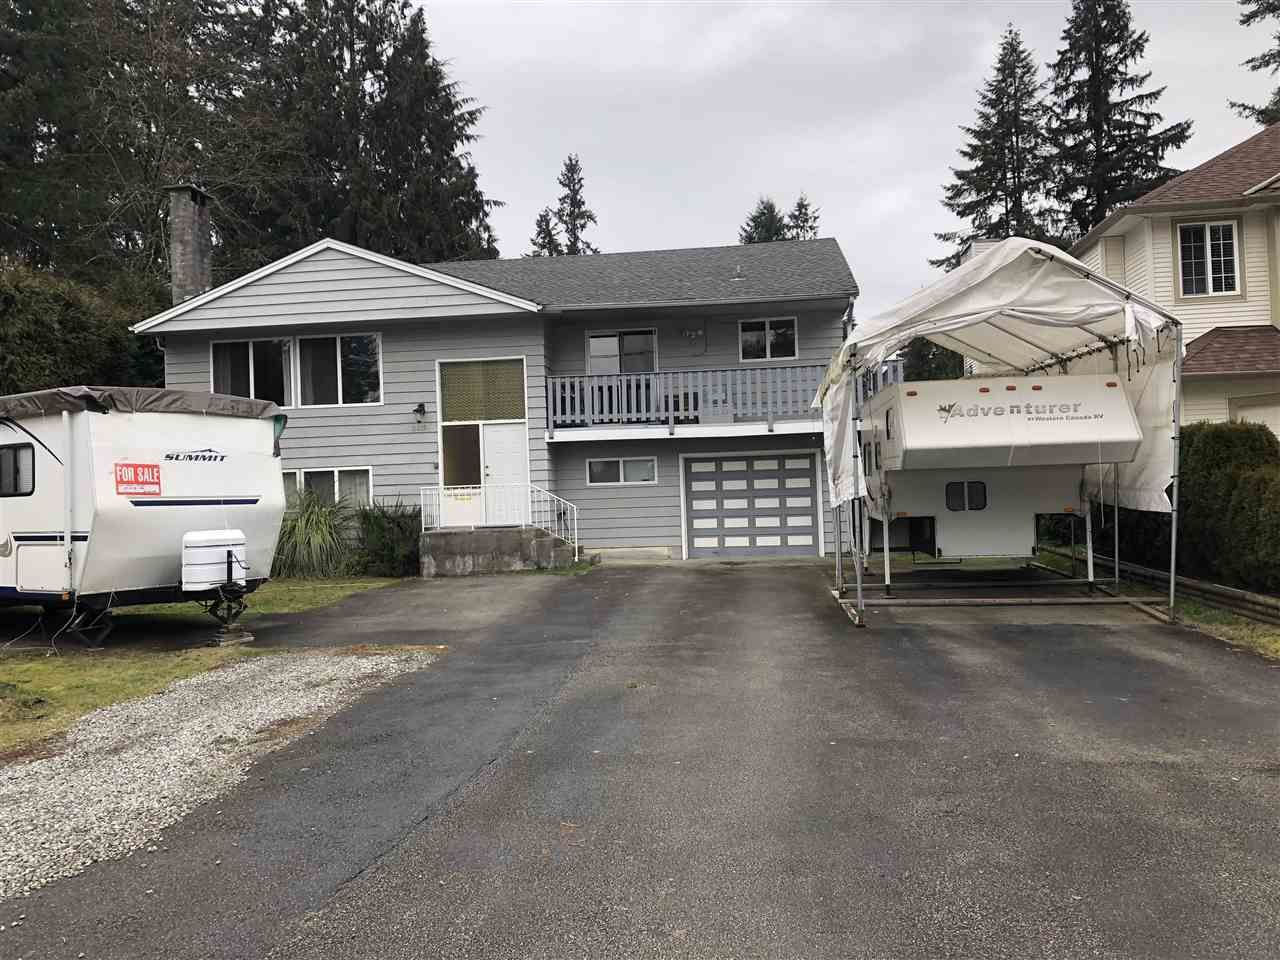 """Main Photo: 2615 KITCHENER Avenue in Port Coquitlam: Woodland Acres PQ House for sale in """"Glenwood Acres"""" : MLS®# R2404418"""